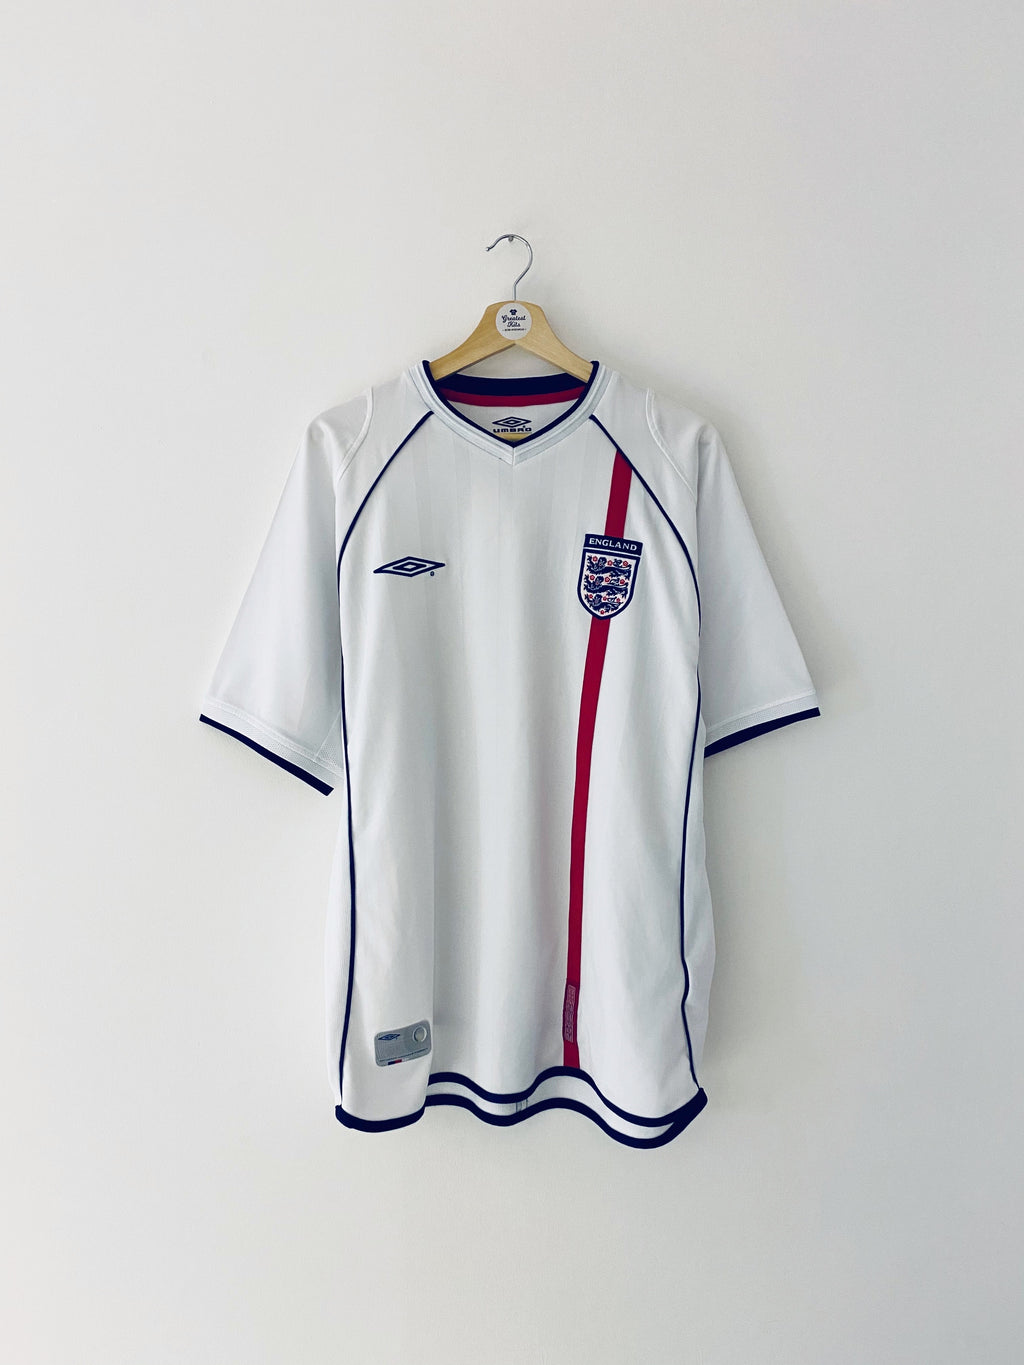 2001/03 England Home Shirt (L) 8/10